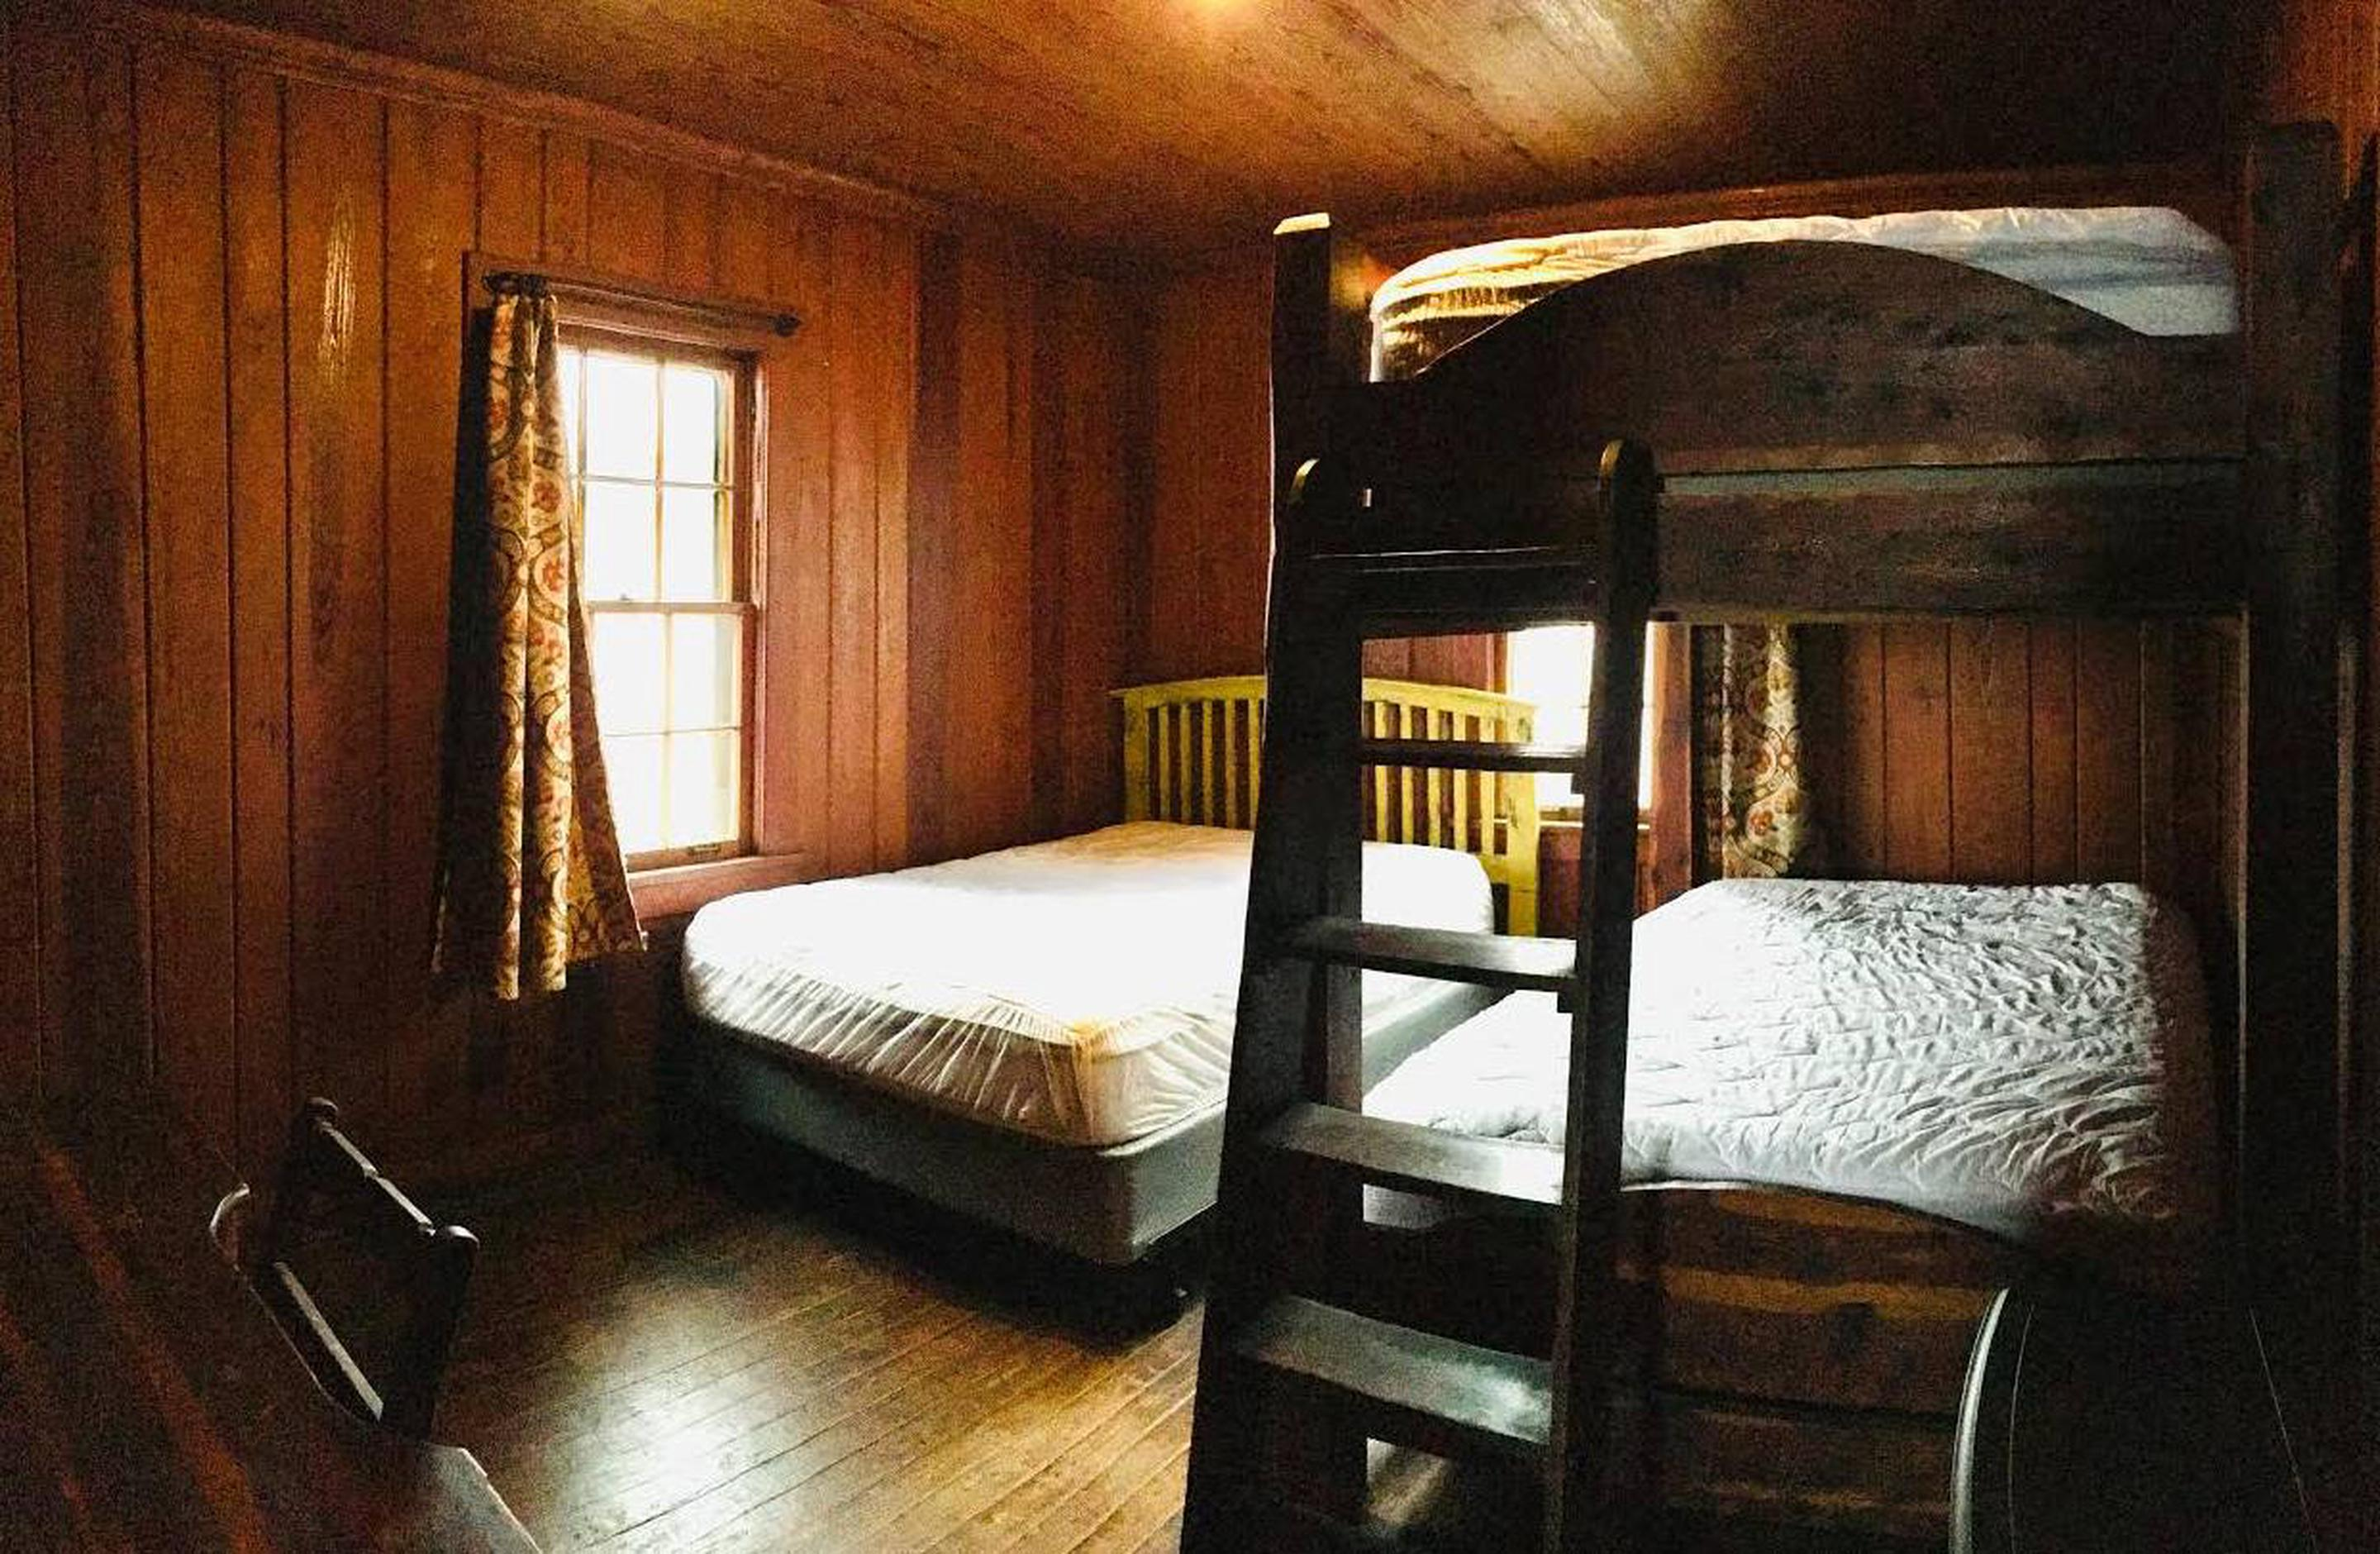 White Rock Mountain, Cabin B Bedroom with one full sized bed and one full sized bunkbed.Cabin B bedroom has one full sized bed and one massive full sized bunkbed, new premium mattresses, clean mattress covers, electric stove.